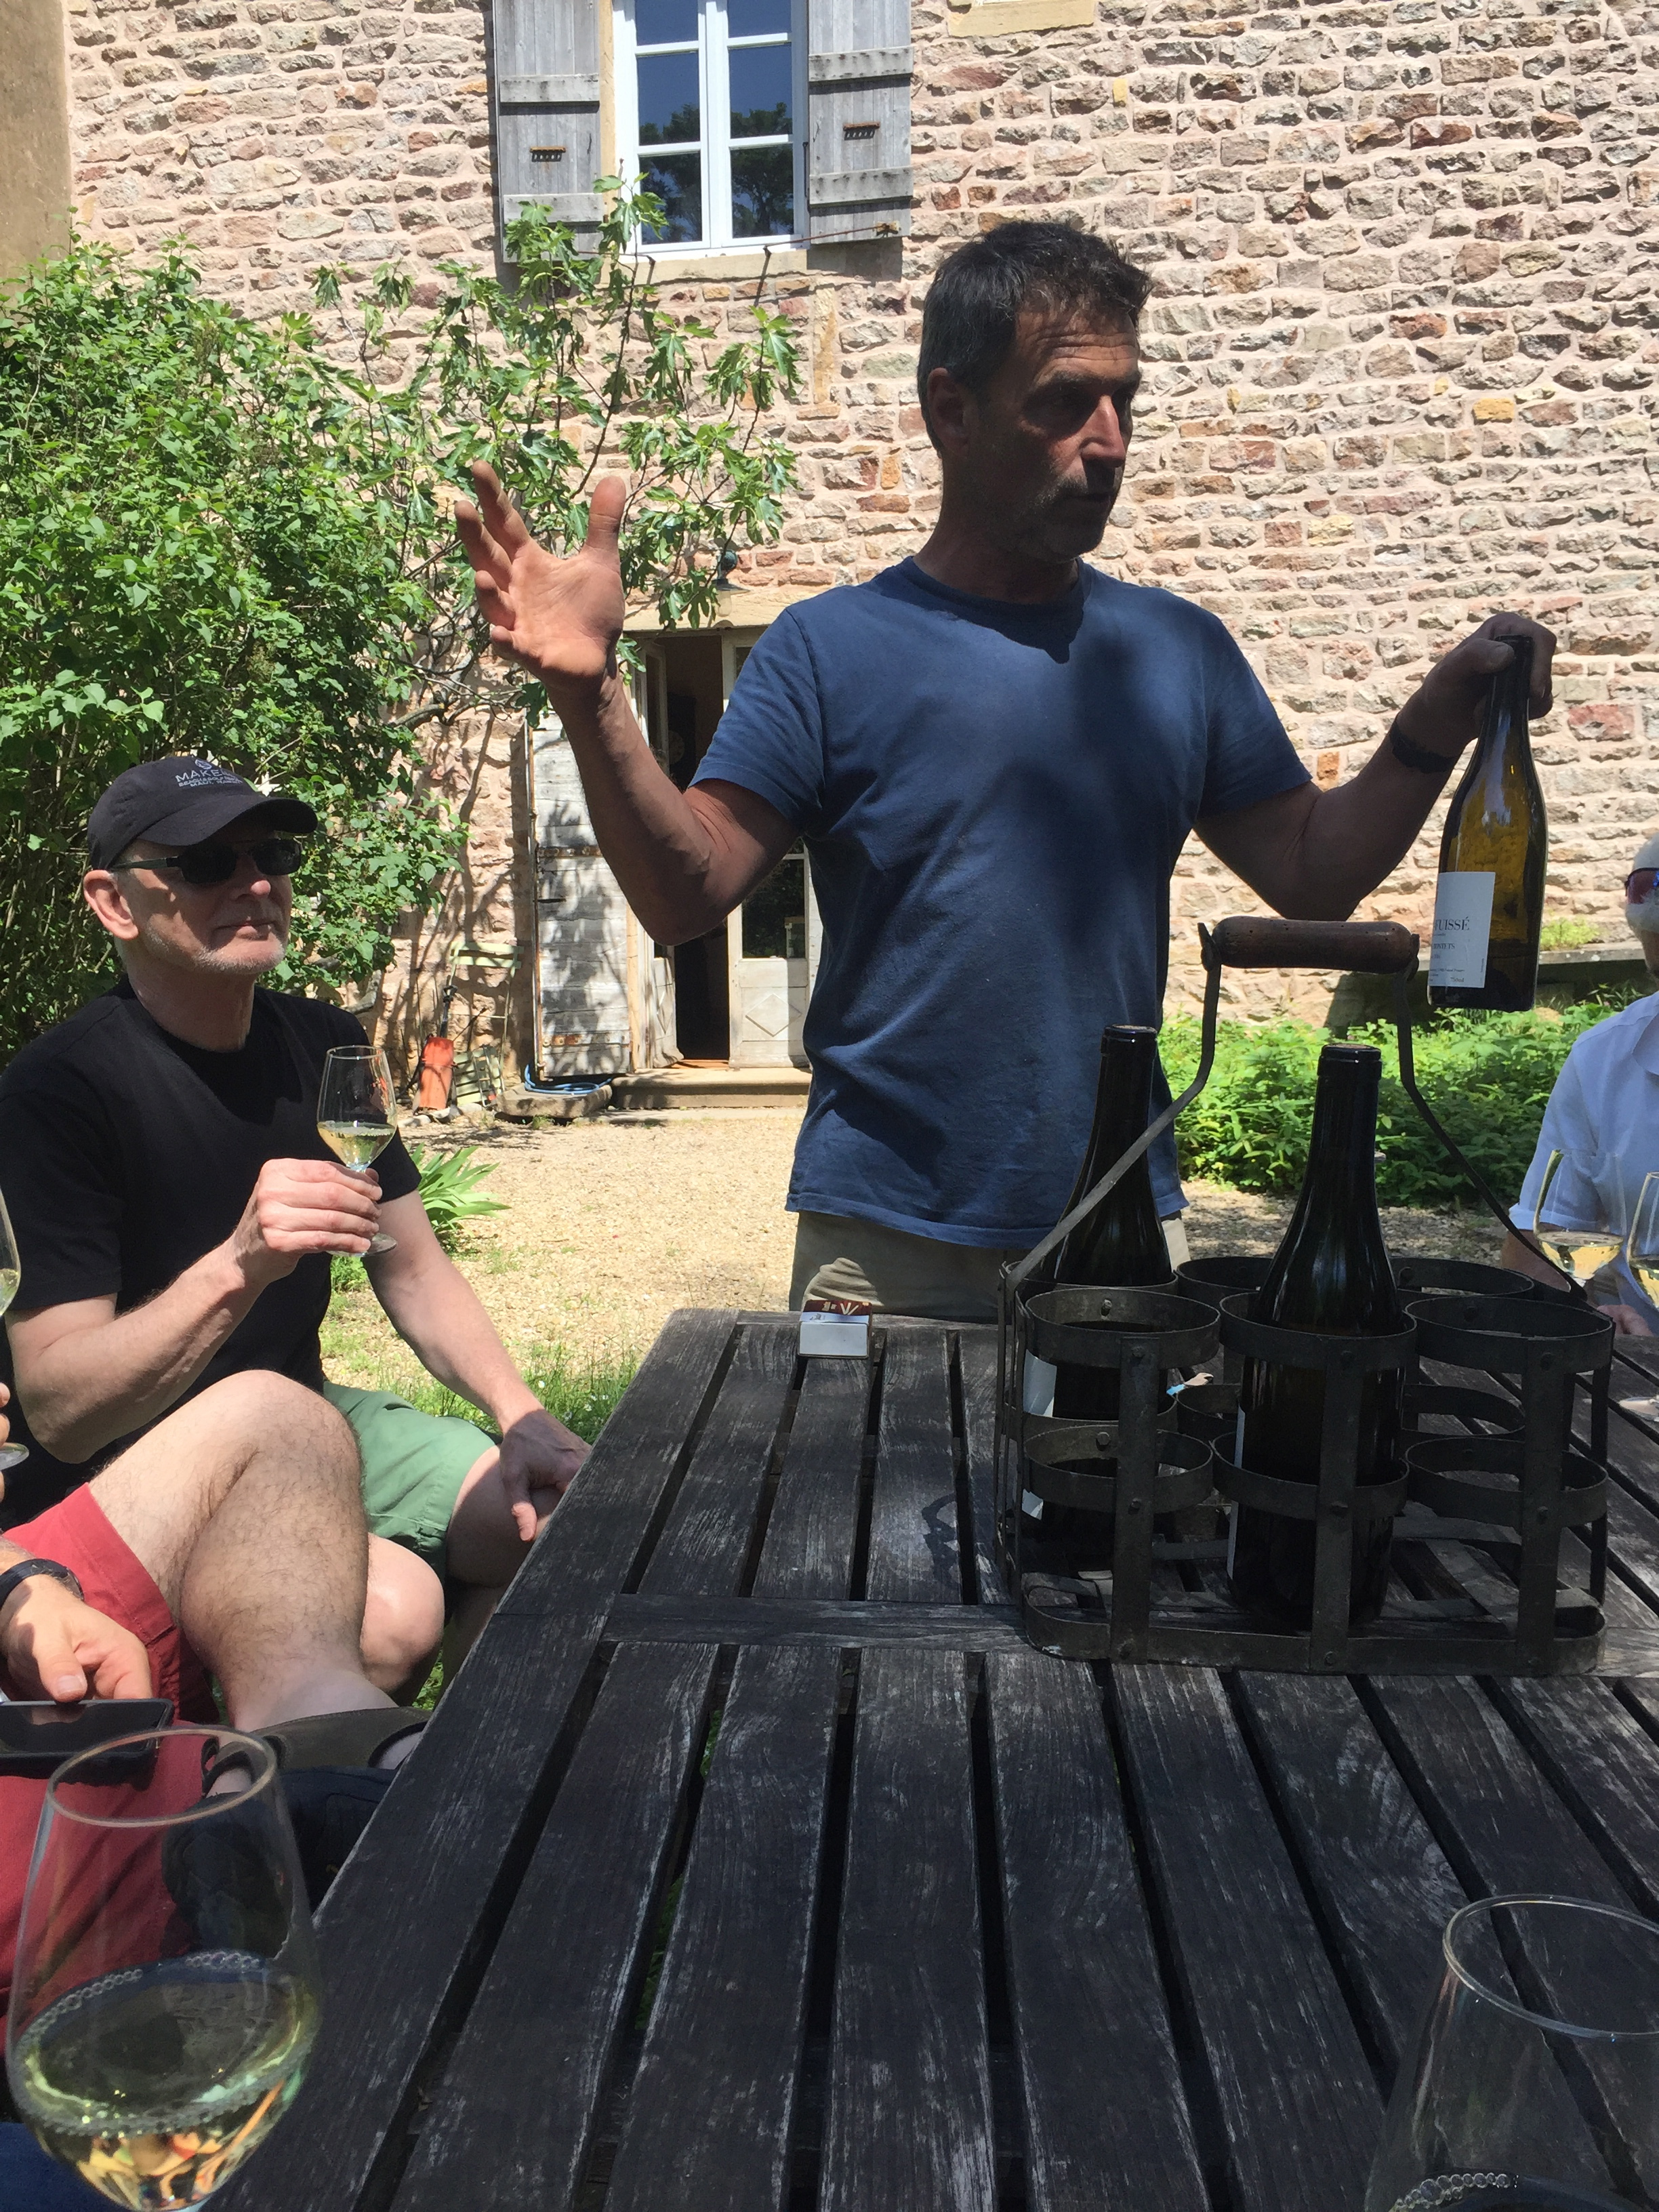 Tasting in the garden with  Fabio  at  Chateau des Rontets